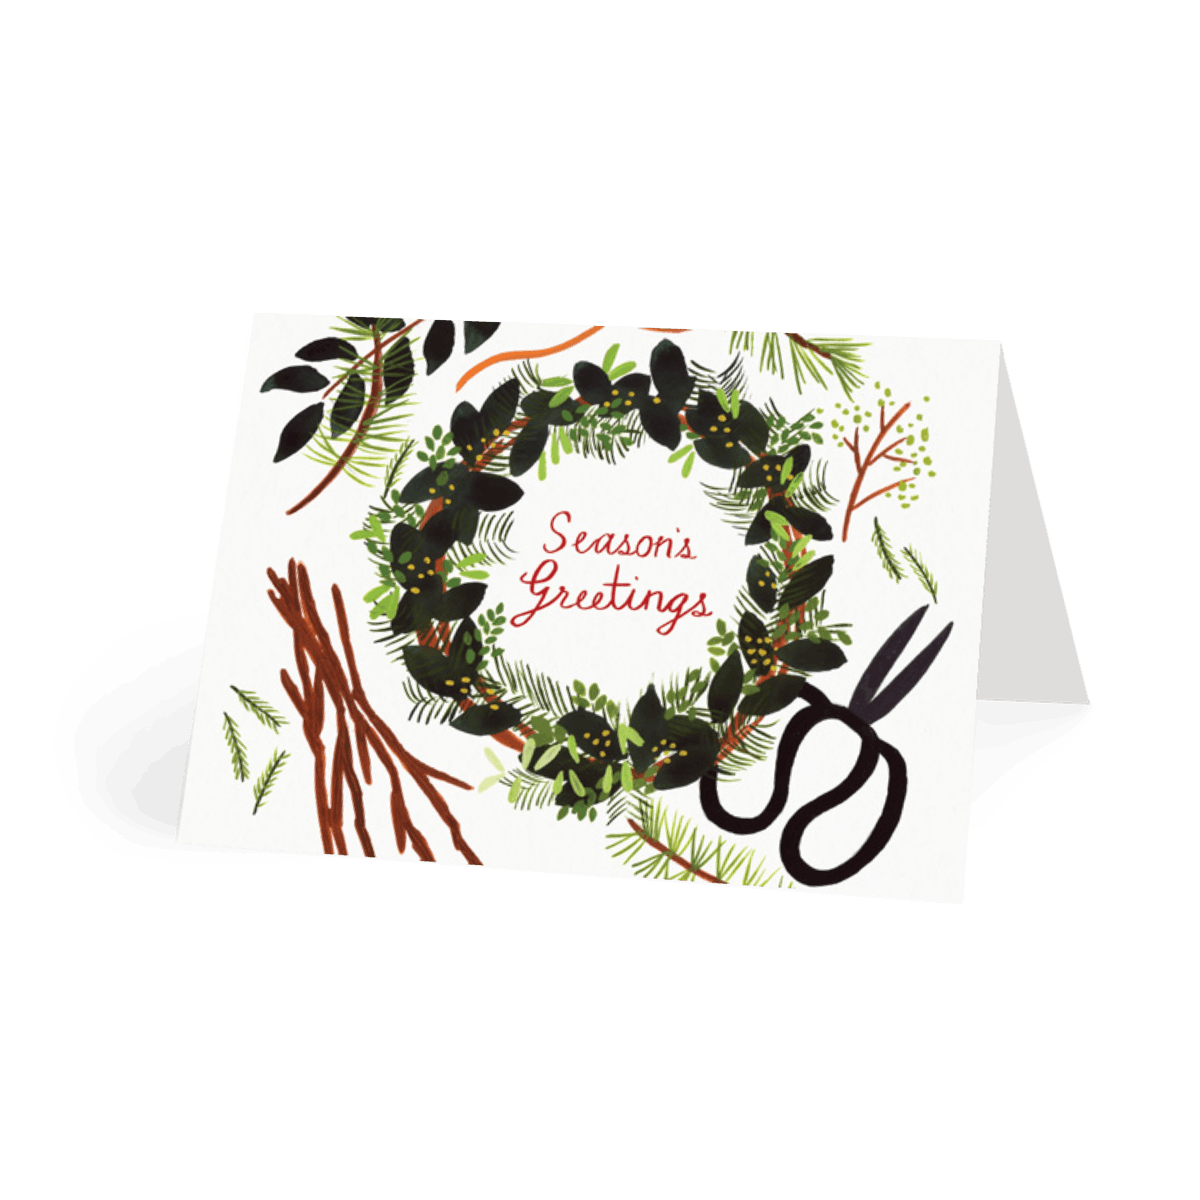 Https%3a%2f%2fwww.papier.com%2fproduct image%2f13205%2f14%2fforaged wreath 3350 front 1542375369.png?ixlib=rb 1.1